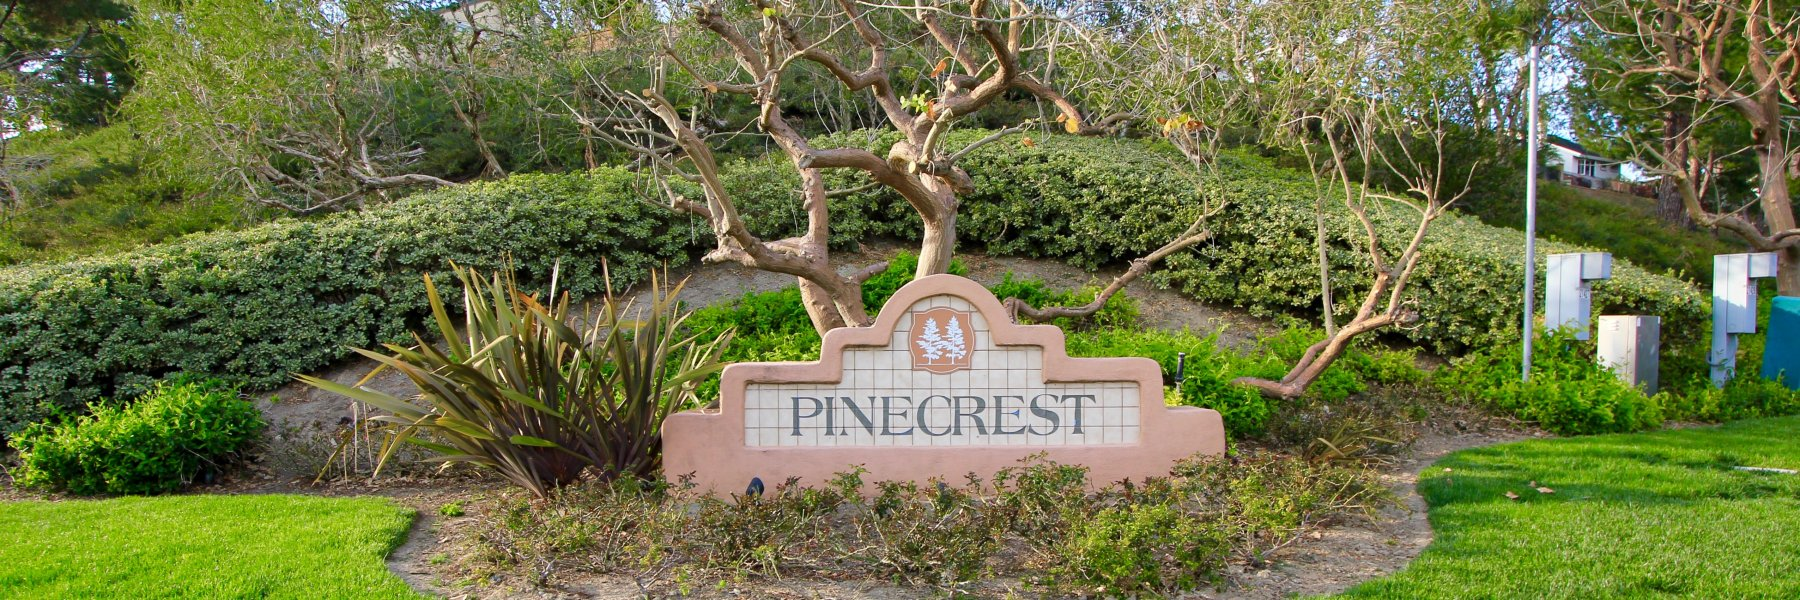 Pinecrest is a community of homes in Mission Viejo California